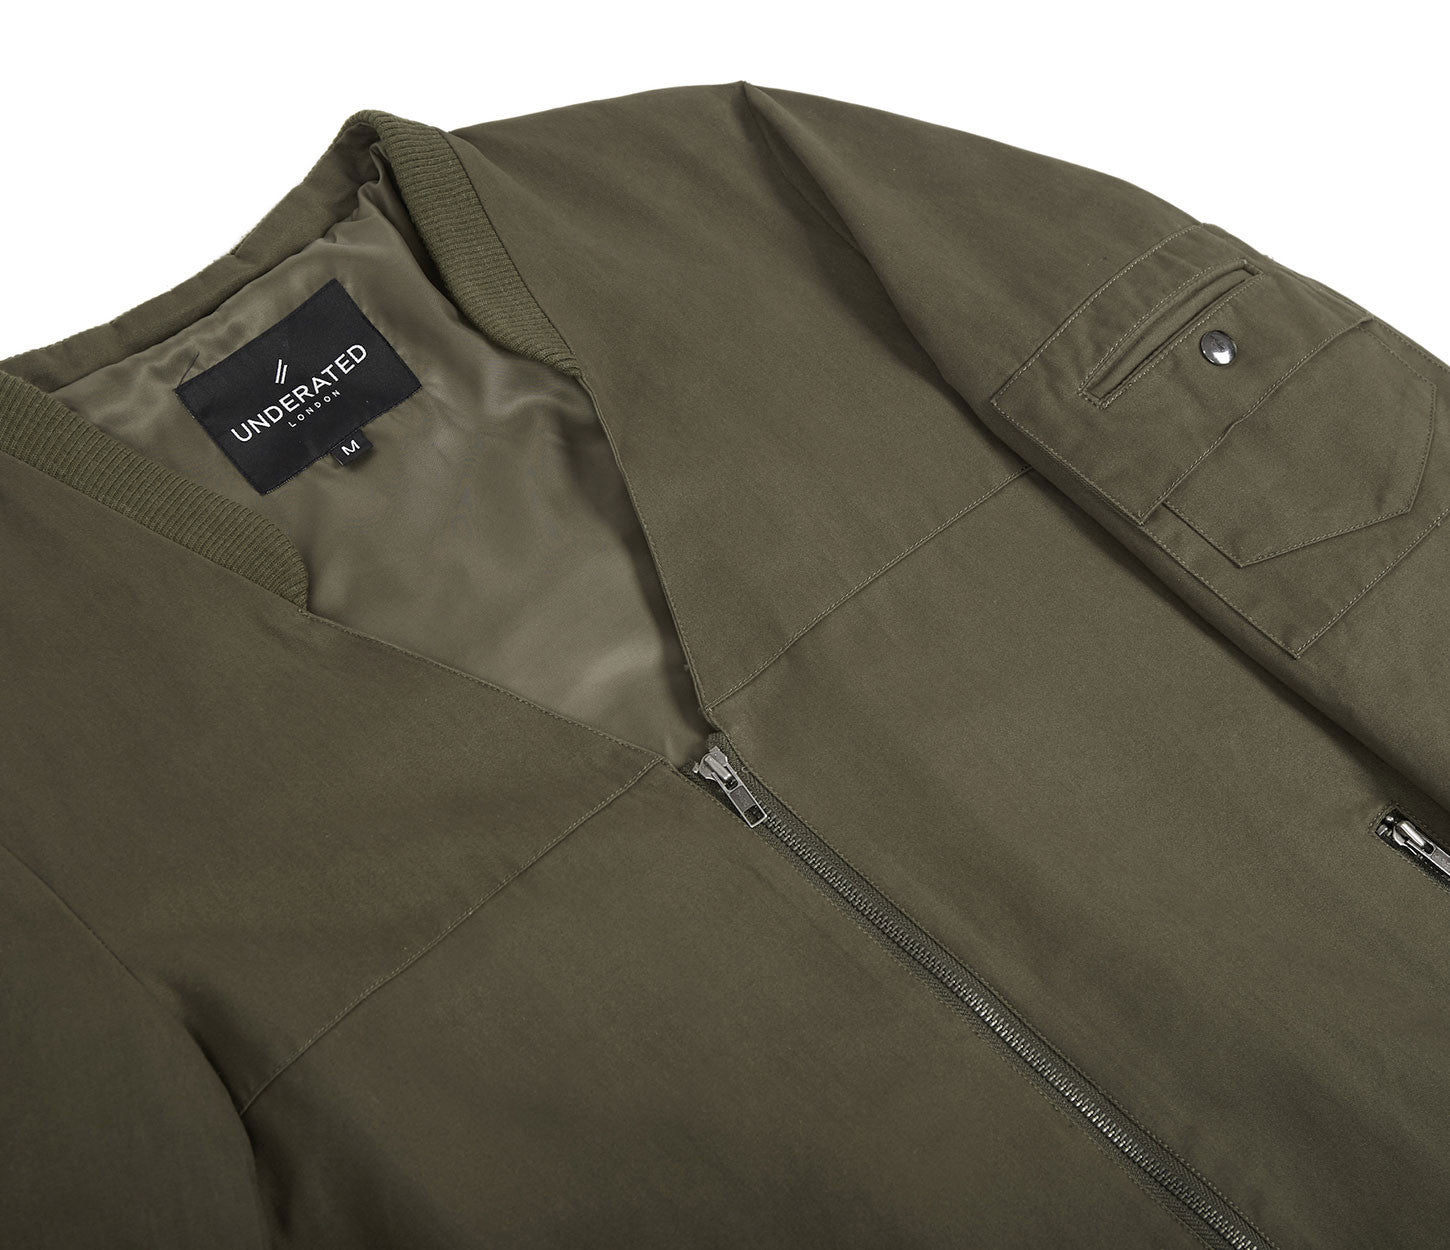 CT338 Utility Messenger Jacket - Khaki - underated london - underatedco - 5